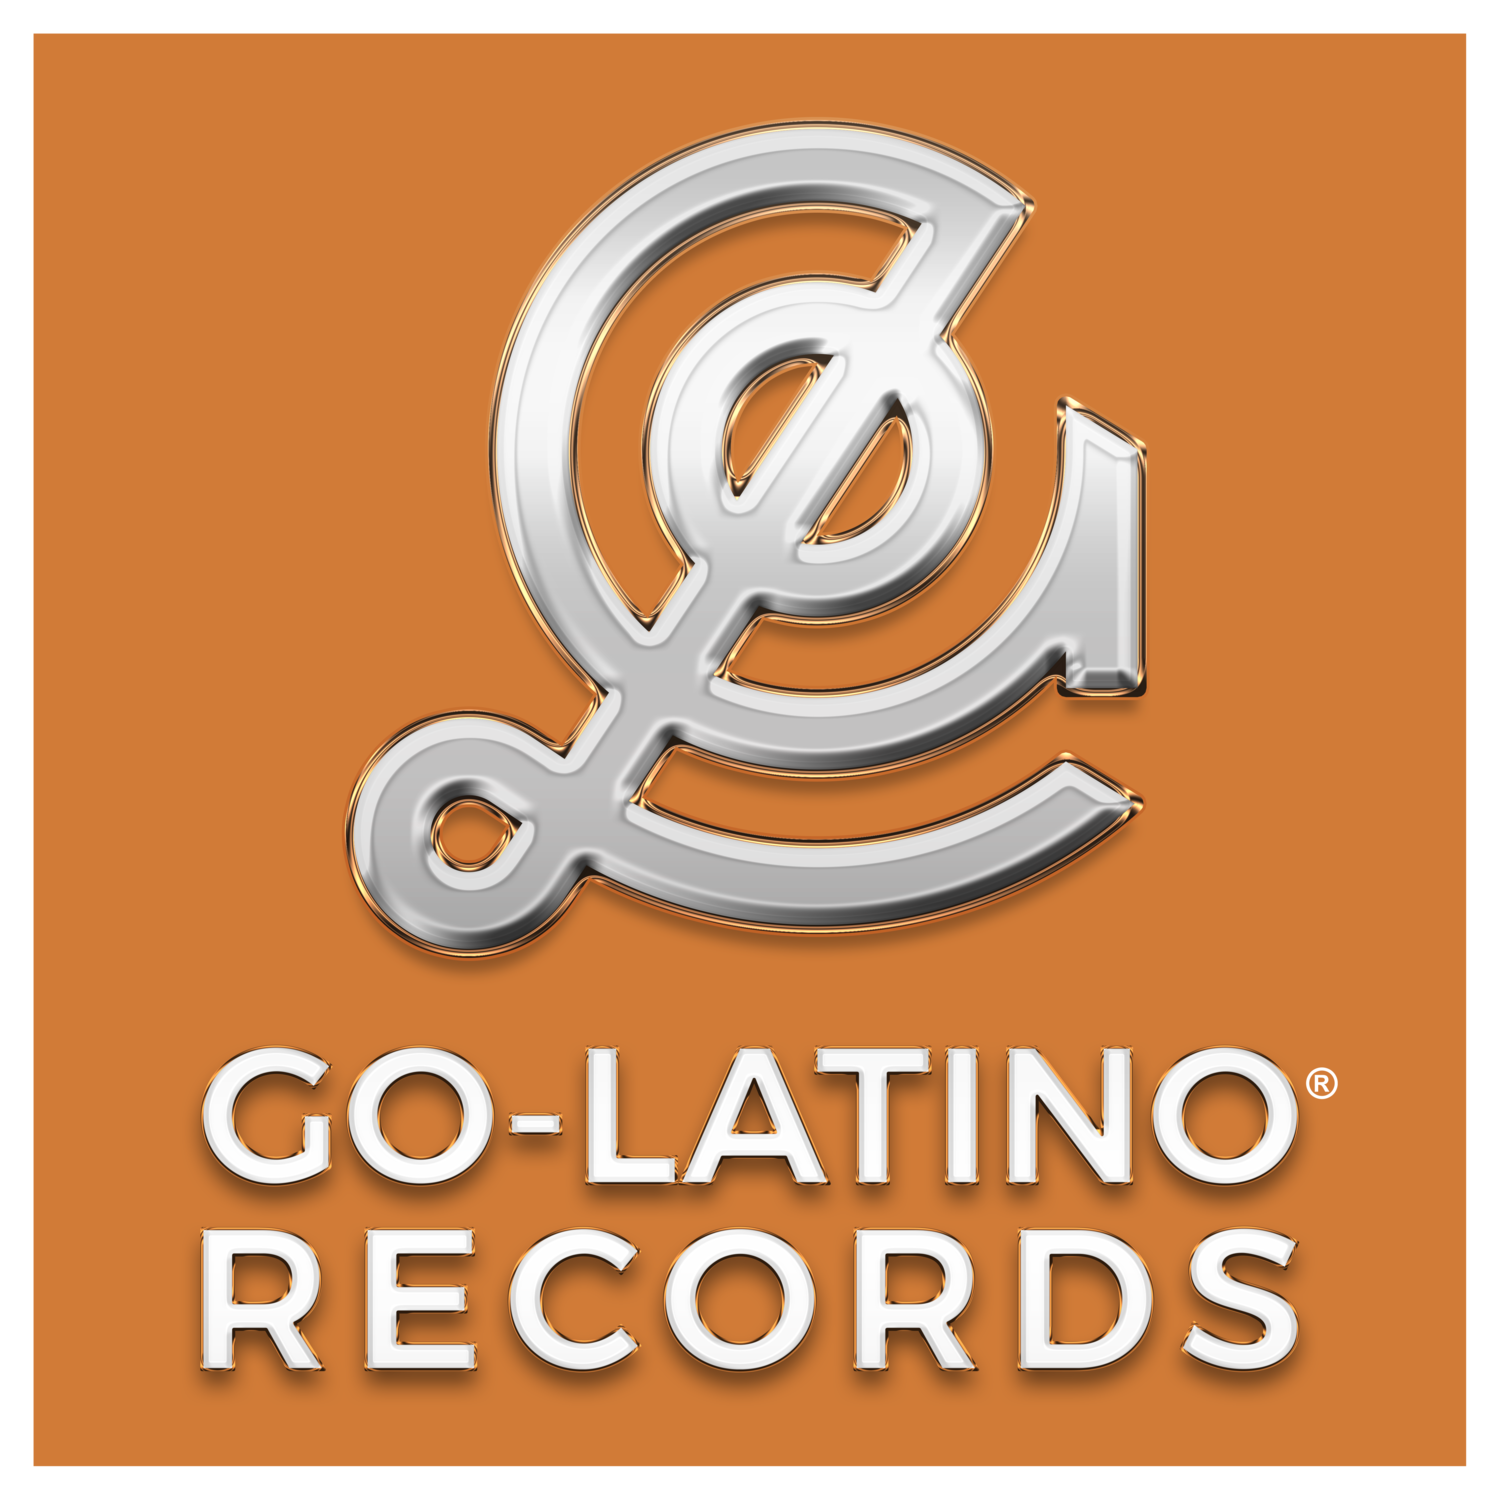 Go-Latino Records